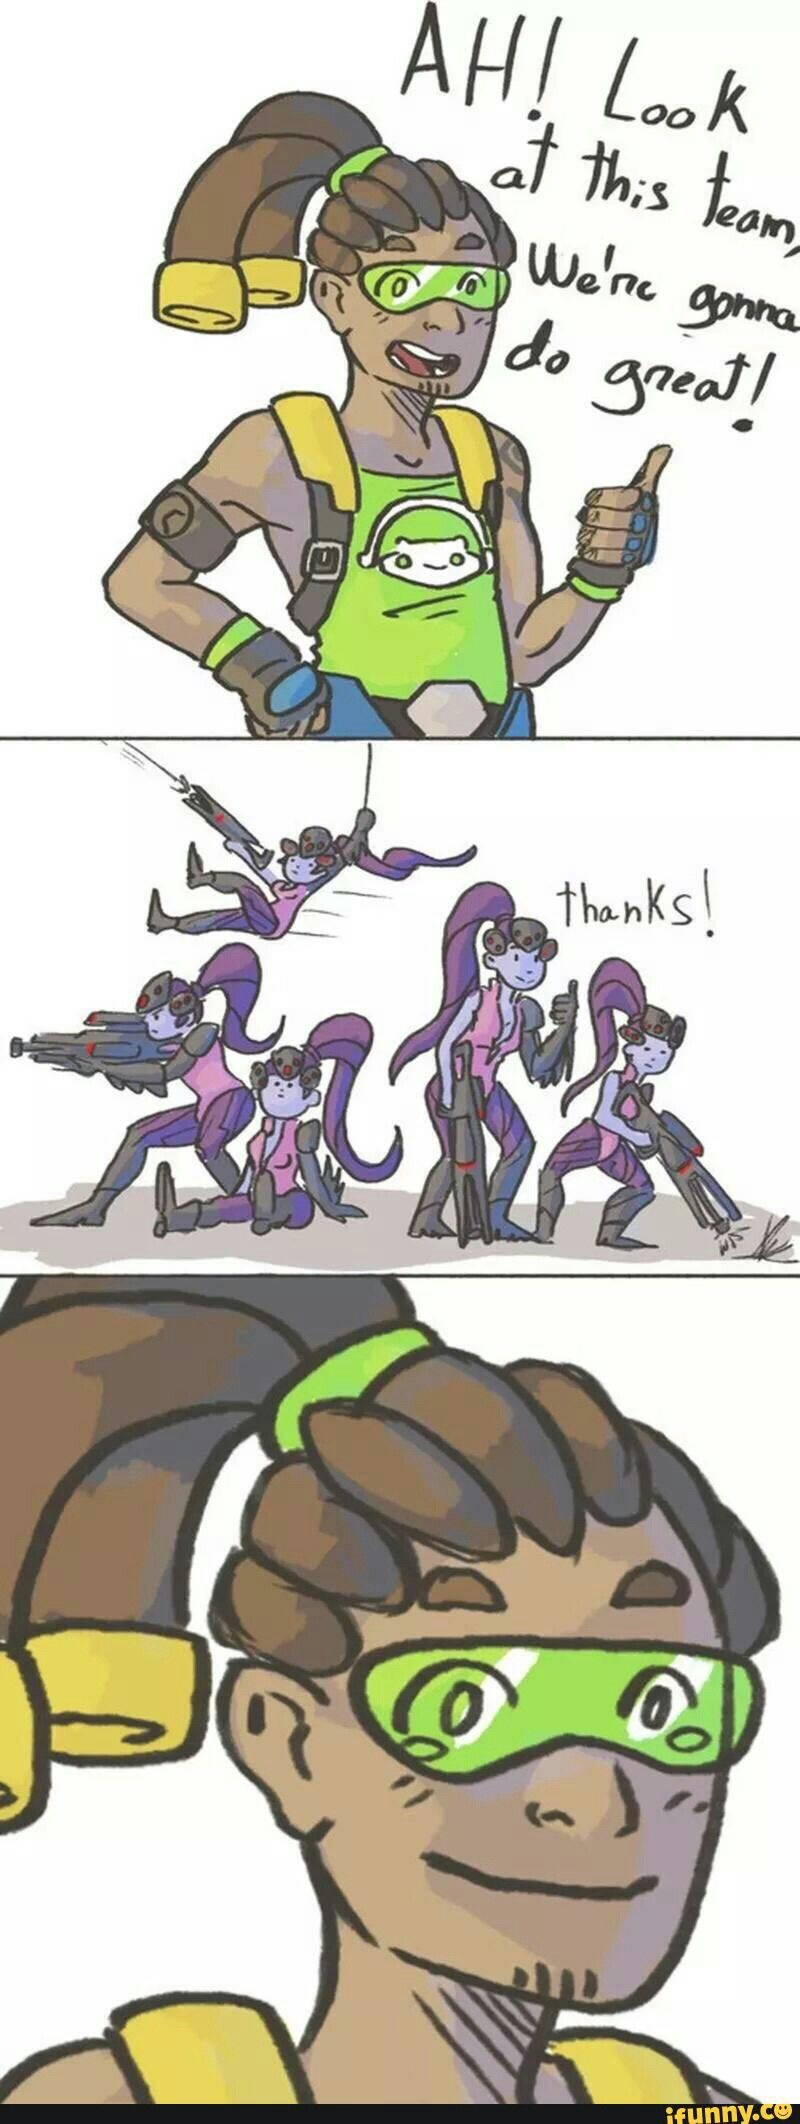 I hate it when they choose so much widowmakers and the worst of all, I will go healer and die 99% of the time.